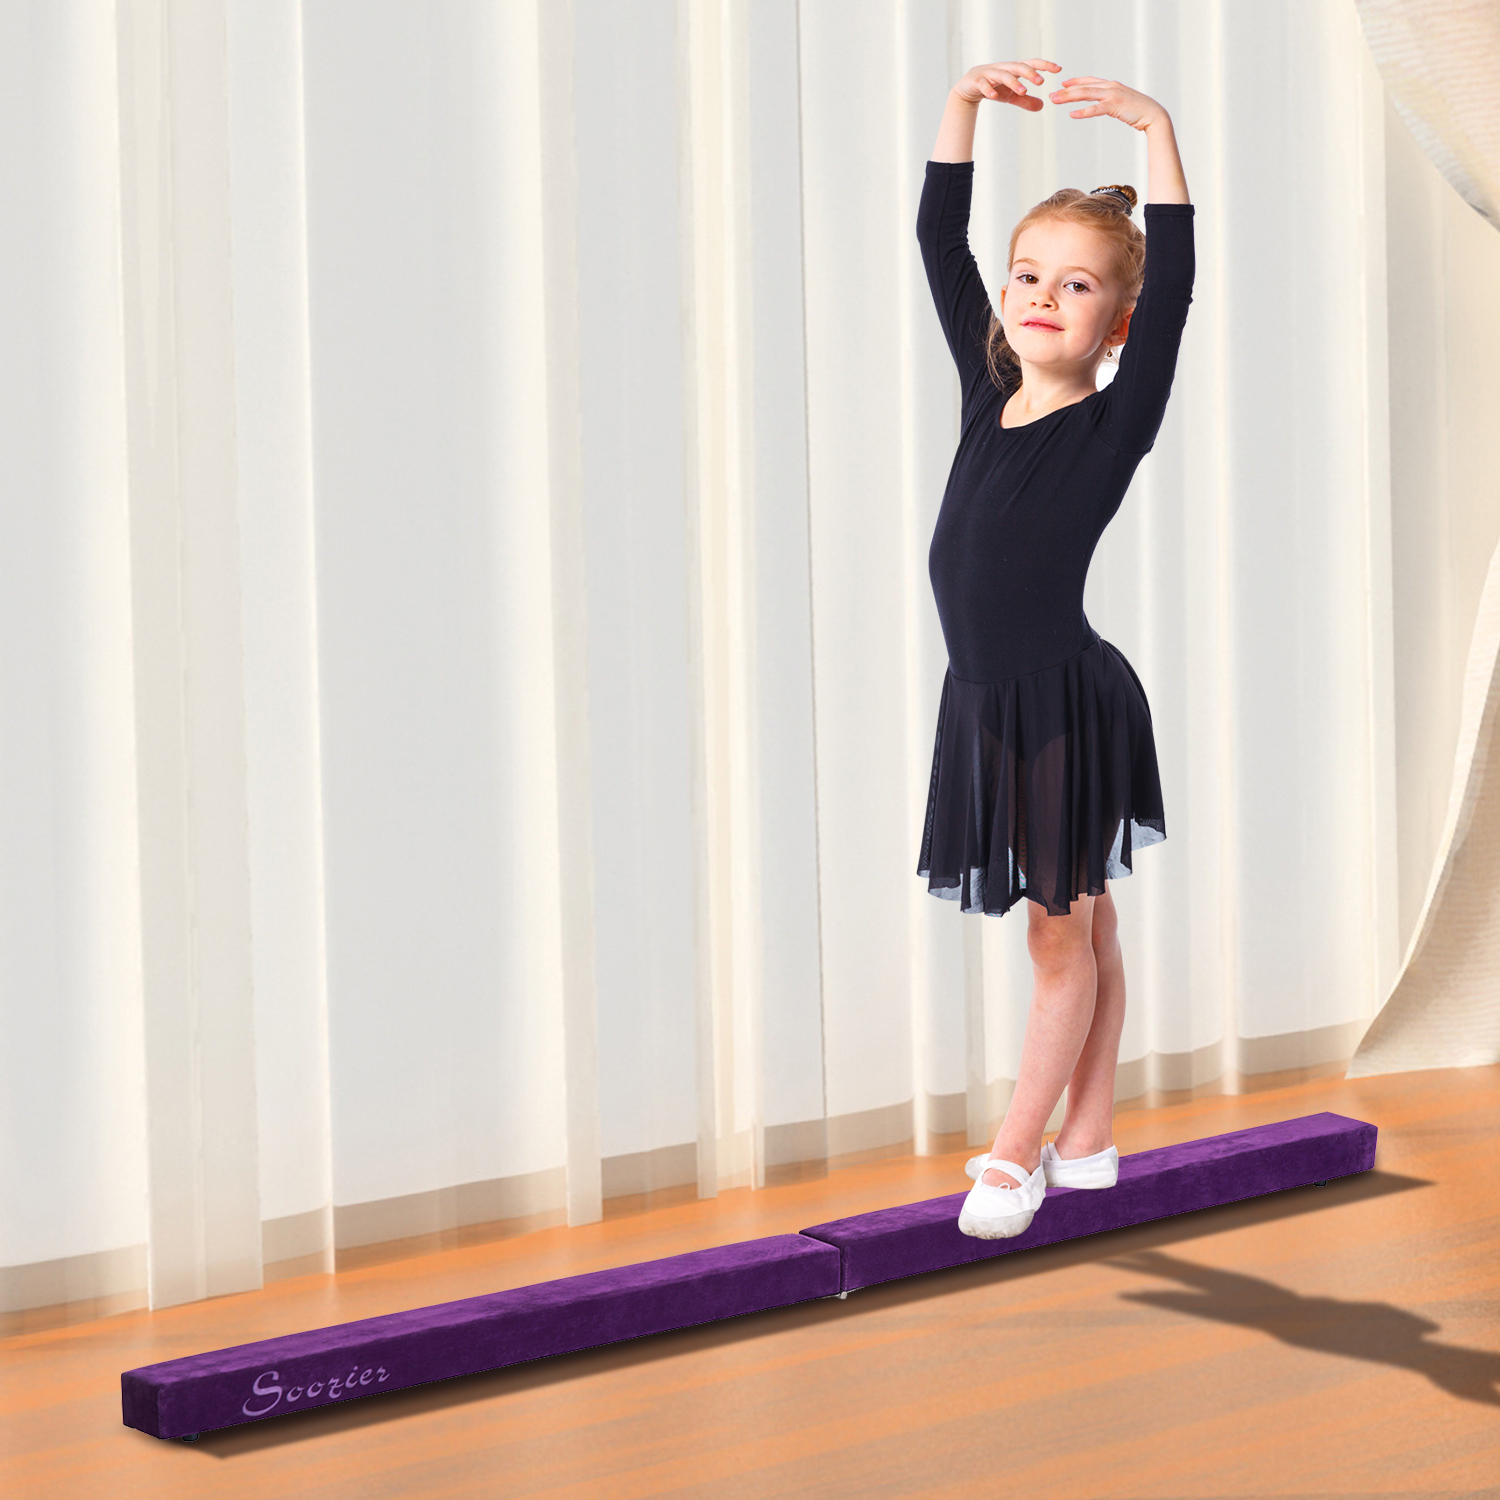 8FT-Folding-Floor-Balance-Beam-WOOD-CORE-Gymnastic-Training-Low-Height-Beam